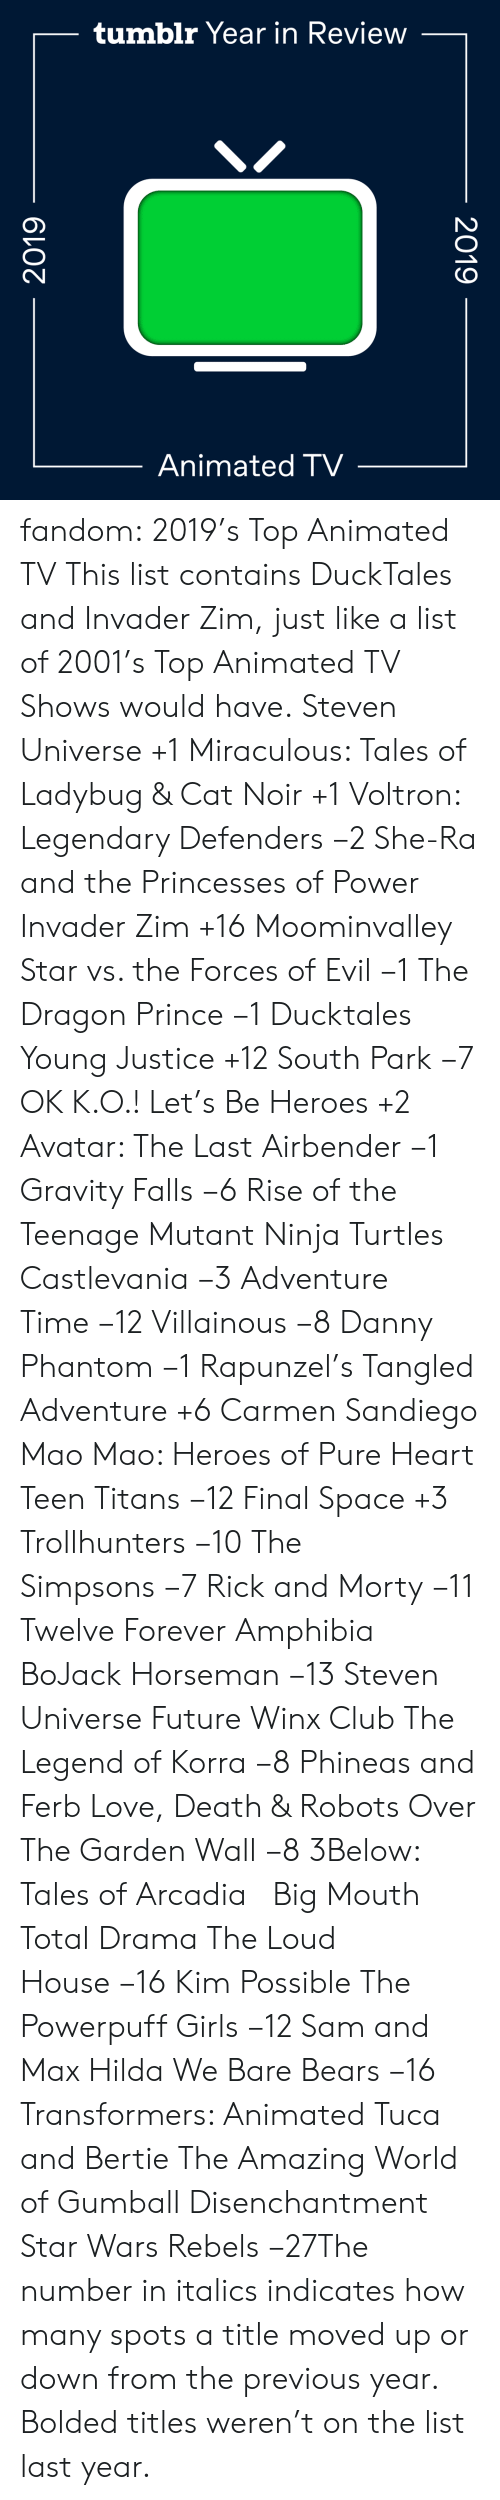 rebels: tumblr Year in Review  Animated TV  2019  2019 fandom:  2019's Top Animated TV  This list contains DuckTales and Invader Zim, just like a list of 2001's Top Animated TV Shows would have.  Steven Universe +1  Miraculous: Tales of Ladybug & Cat Noir +1  Voltron: Legendary Defenders −2  She-Ra and the Princesses of Power   Invader Zim +16  Moominvalley  Star vs. the Forces of Evil −1  The Dragon Prince −1  Ducktales  Young Justice +12  South Park −7  OK K.O.! Let's Be Heroes +2  Avatar: The Last Airbender −1  Gravity Falls −6  Rise of the Teenage Mutant Ninja Turtles  Castlevania −3  Adventure Time −12  Villainous −8  Danny Phantom −1  Rapunzel's Tangled Adventure +6  Carmen Sandiego  Mao Mao: Heroes of Pure Heart  Teen Titans −12  Final Space +3  Trollhunters −10  The Simpsons −7  Rick and Morty −11  Twelve Forever  Amphibia  BoJack Horseman −13  Steven Universe Future  Winx Club  The Legend of Korra −8  Phineas and Ferb  Love, Death & Robots  Over The Garden Wall −8  3Below: Tales of Arcadia    Big Mouth  Total Drama  The Loud House −16  Kim Possible  The Powerpuff Girls −12  Sam and Max  Hilda  We Bare Bears −16  Transformers: Animated  Tuca and Bertie  The Amazing World of Gumball  Disenchantment Star Wars Rebels −27The number in italics indicates how many spots a title moved up or down from the previous year. Bolded titles weren't on the list last year.